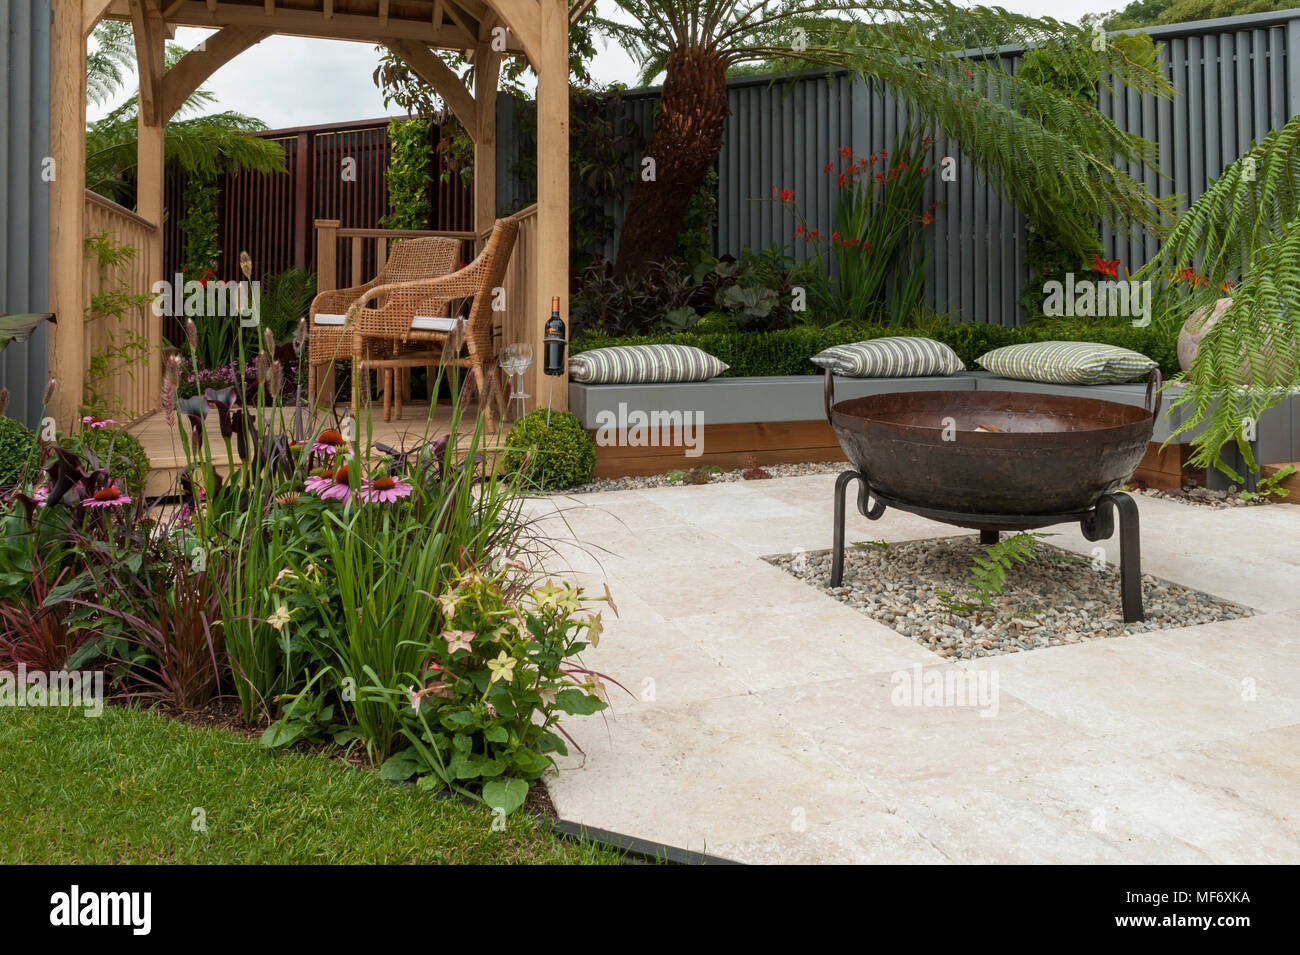 Seating Areas Gazebo Patio Fire Pit Flowers In Tropical Style Show Garden Visit Plantation Colonial Chic And Bajan Roots Rhs Show Tatton Park Stock Photo Alamy